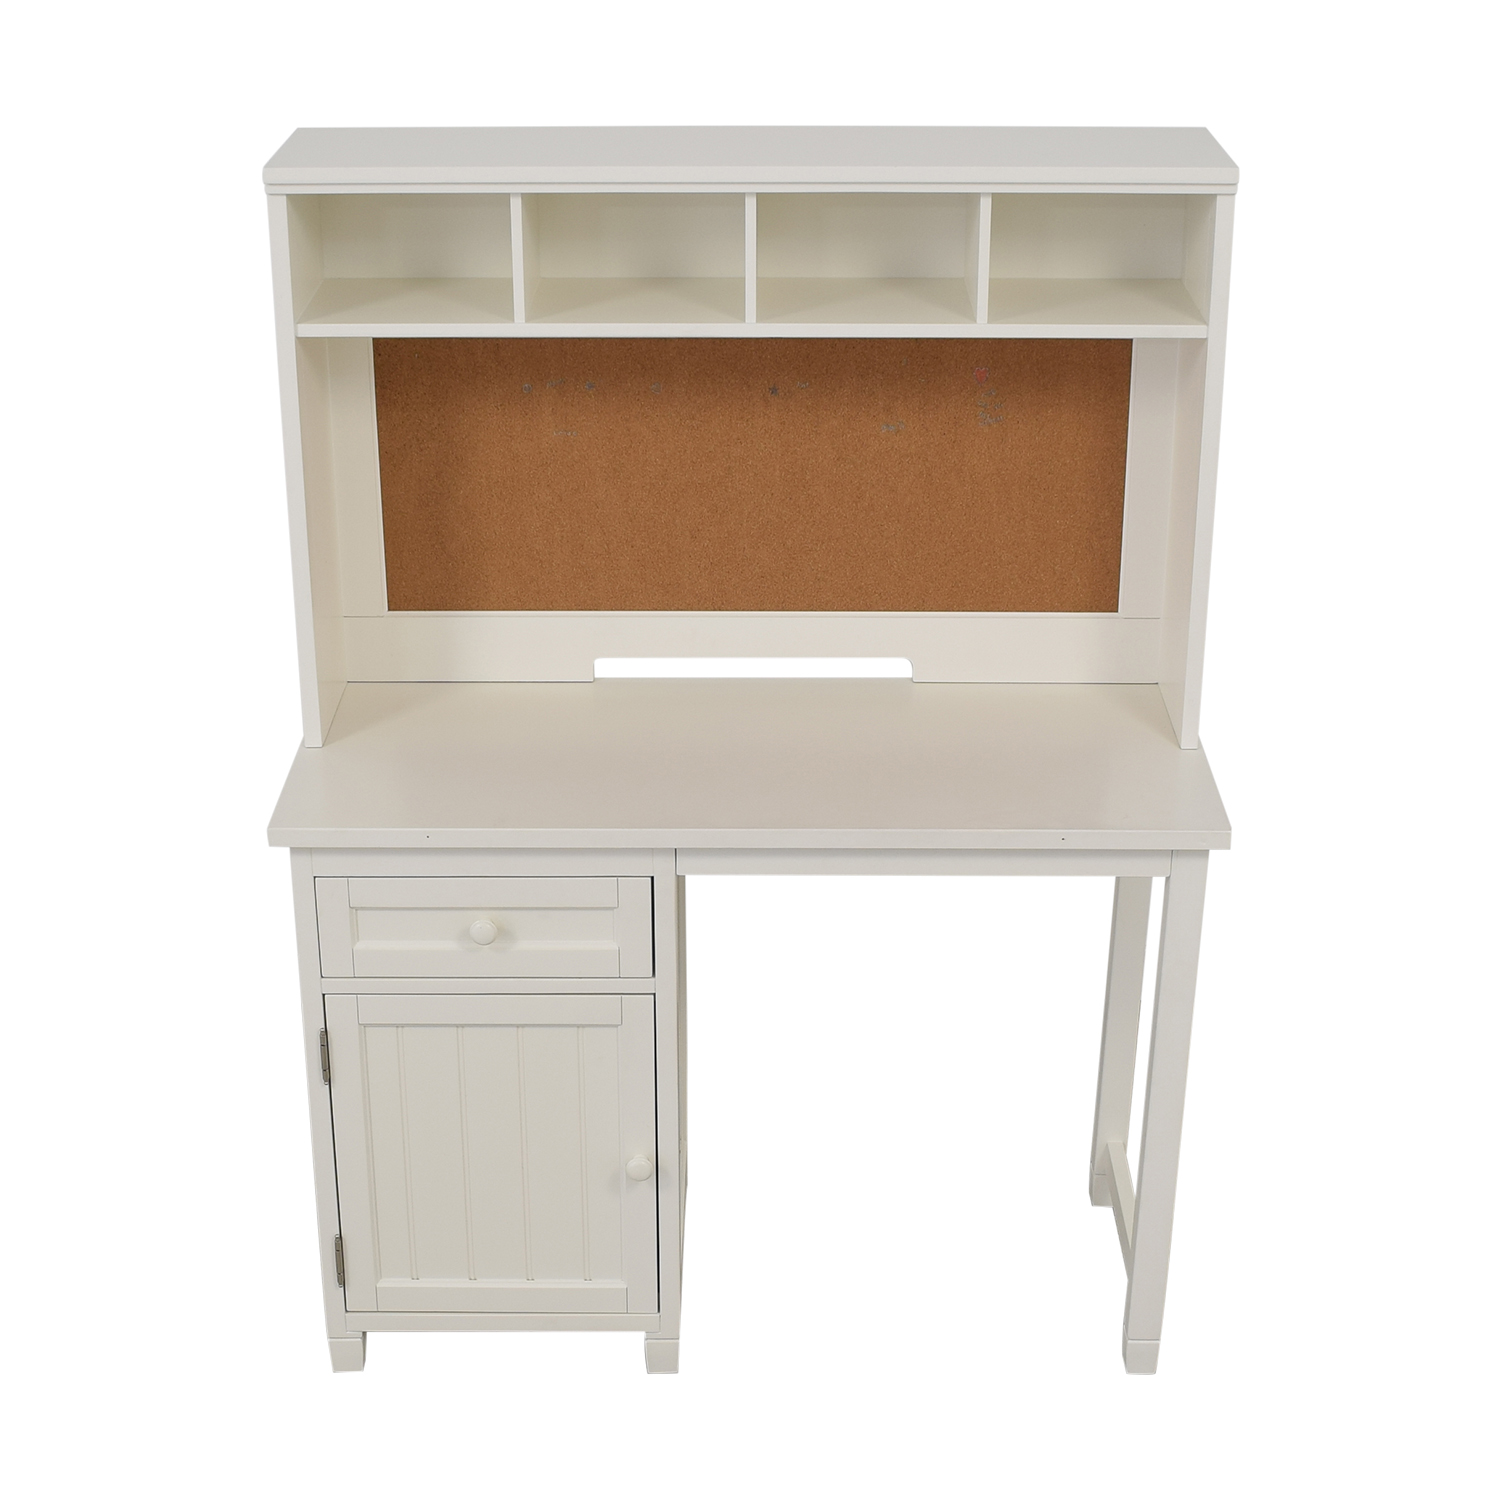 Pottery Barn Teen Pottery Barn Teen Beadboard Desk and Hutch white